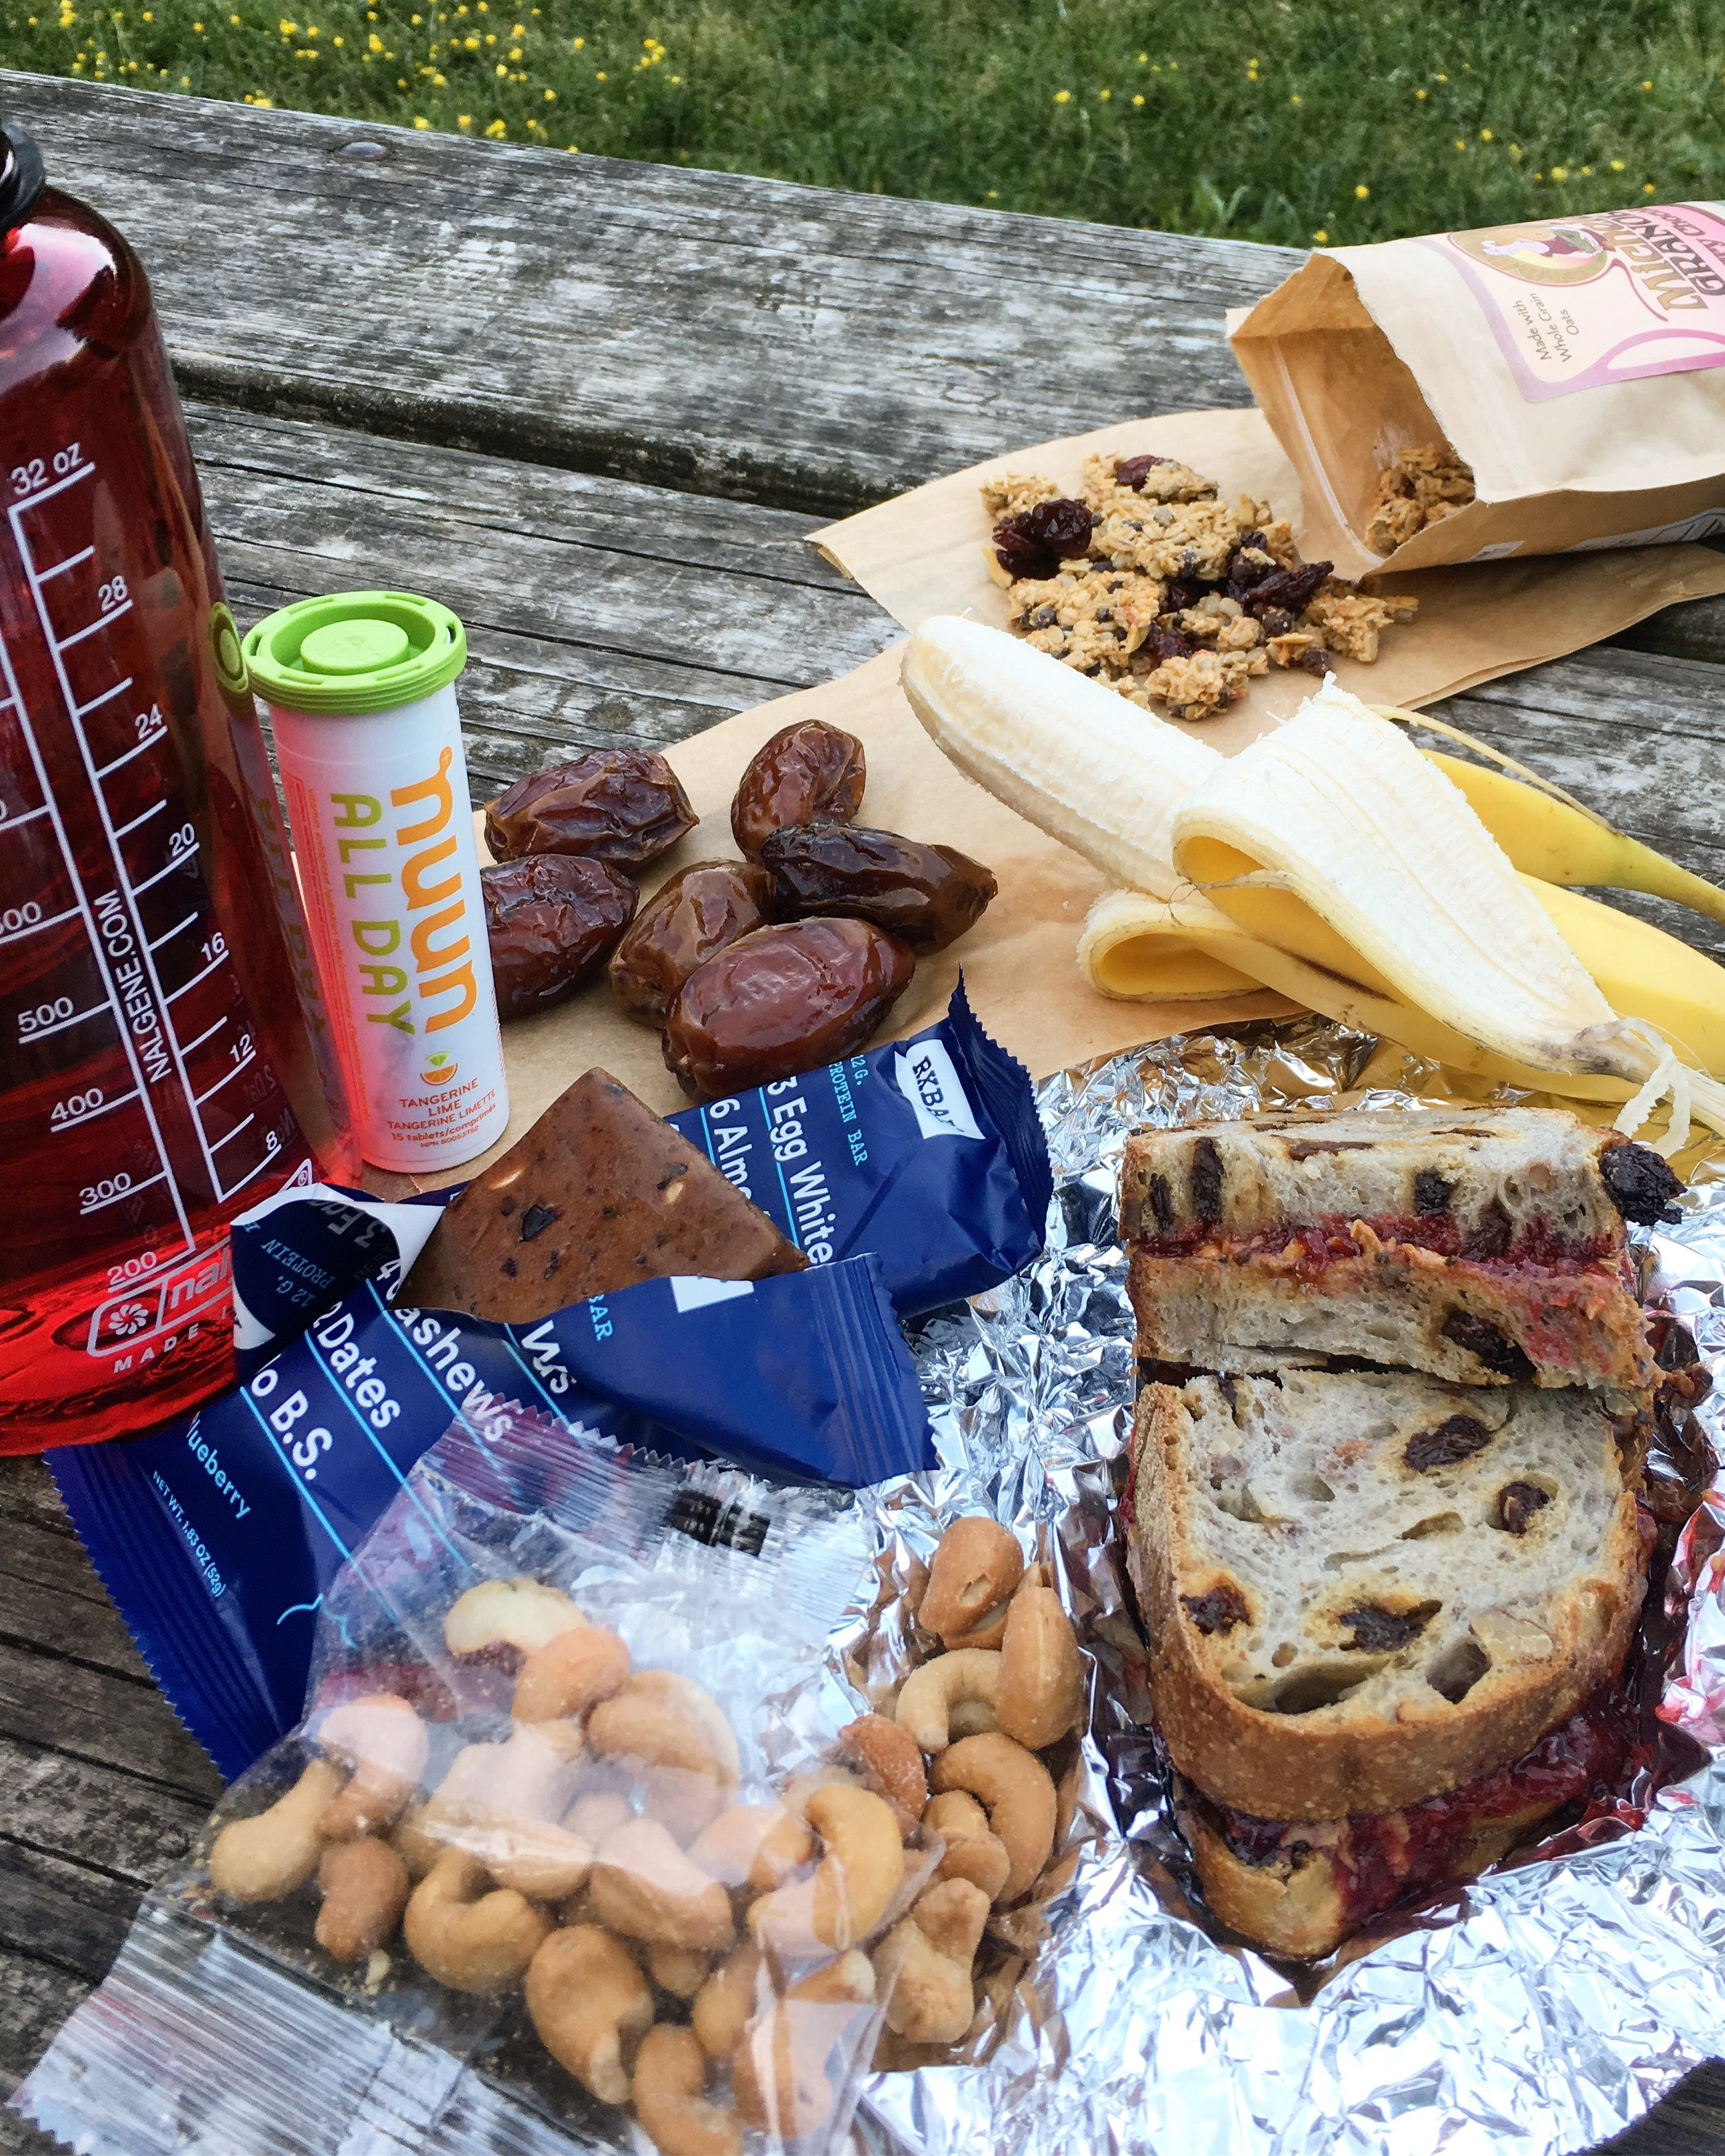 Pack lunch or snacks for Rock Creek Trail